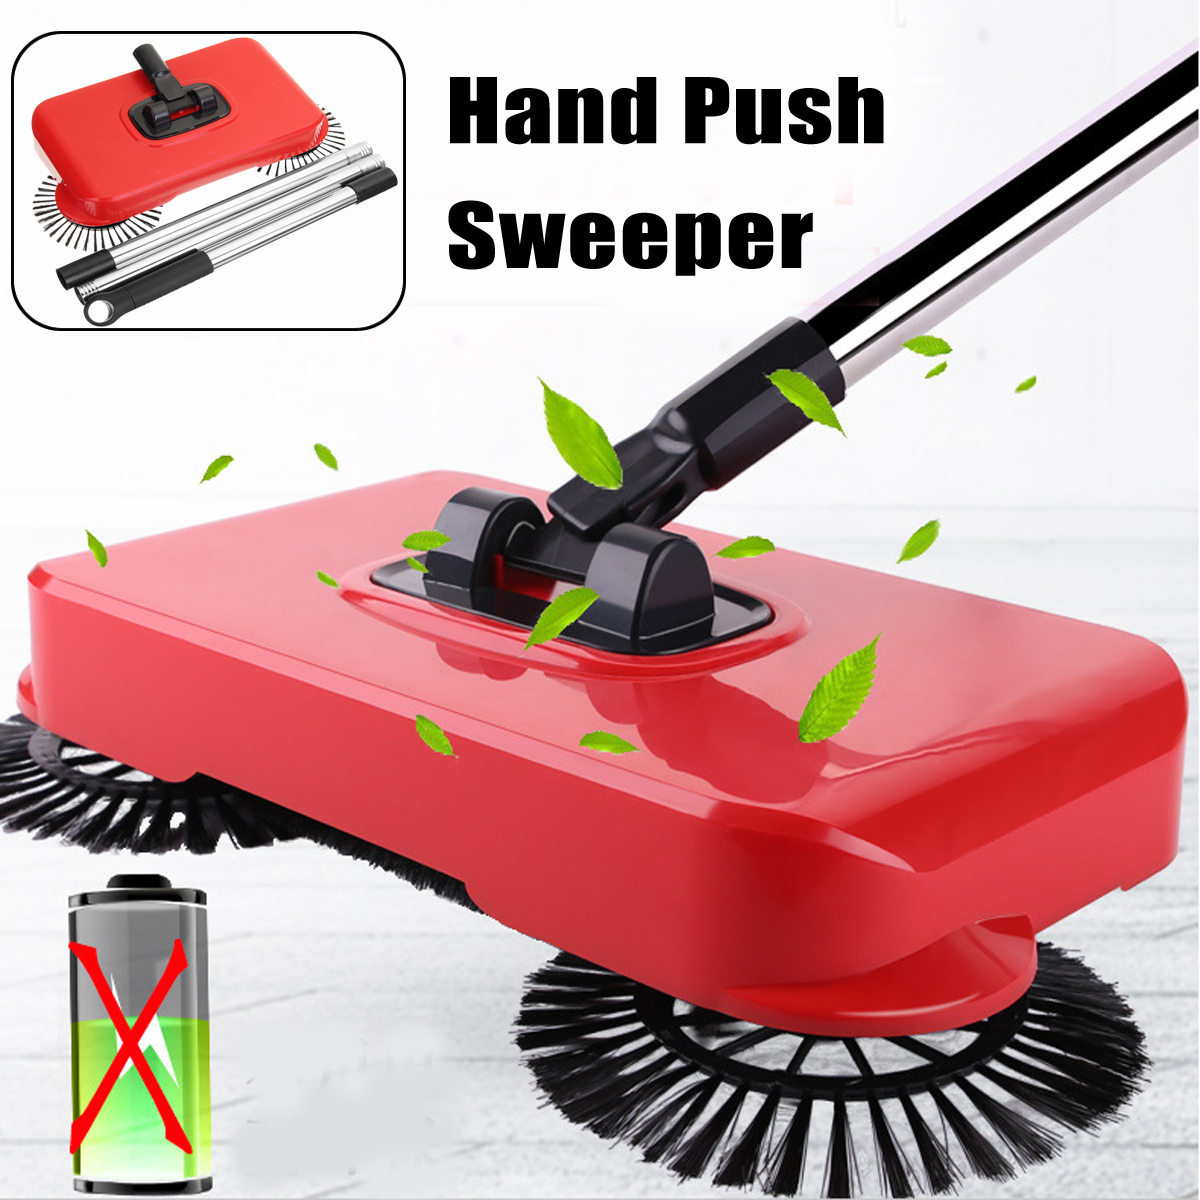 Spin Broom Hand Push Sweeper Clean Your Home Easy Without Electricity 360 Rotation Laziness Hand Sweep Machine spin sweeper broom long handle floor broom